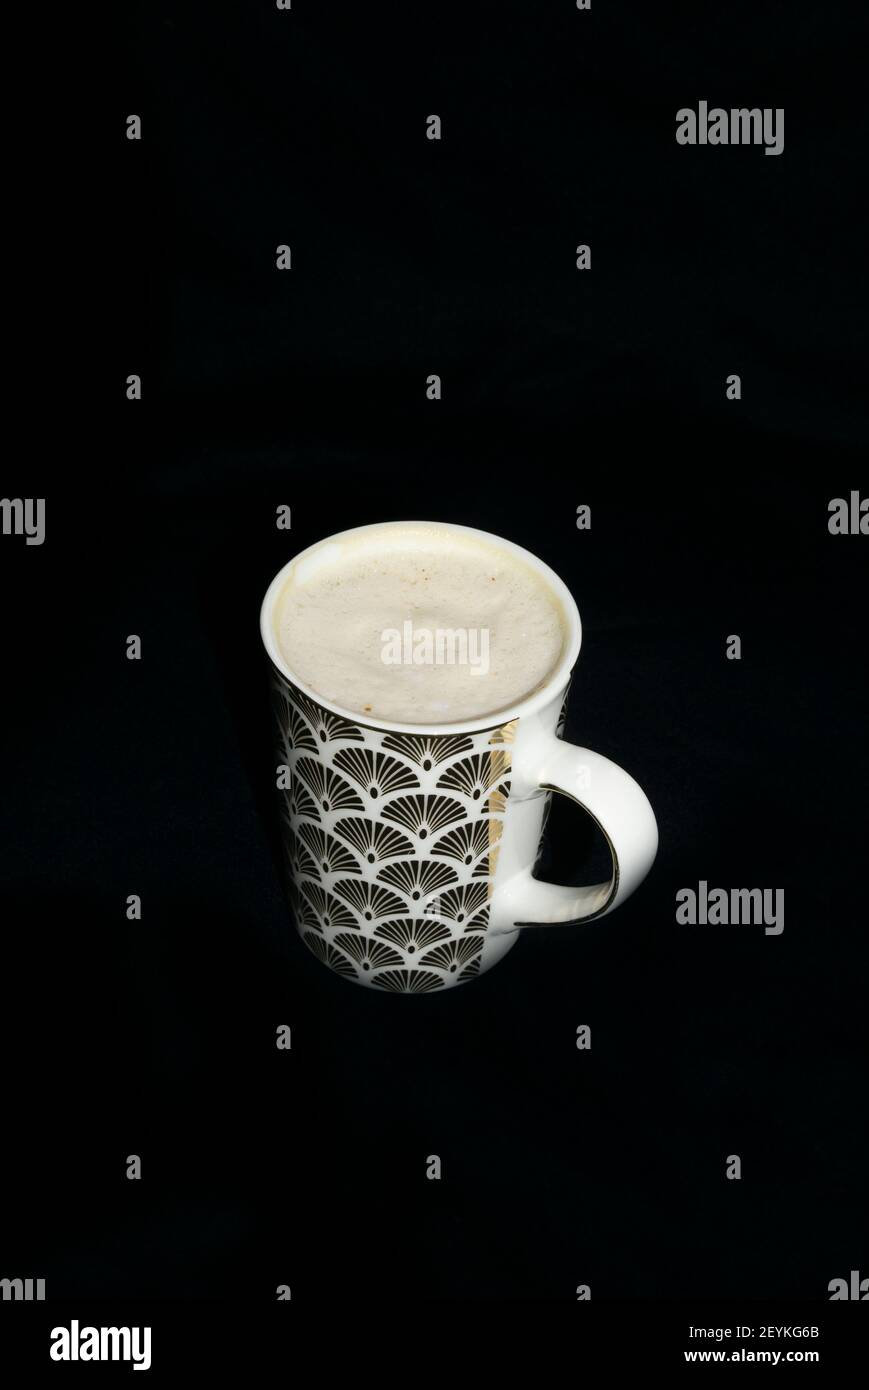 frothy-coffee-in-mug-with-art-deco-design-2EYKG6B.jpg